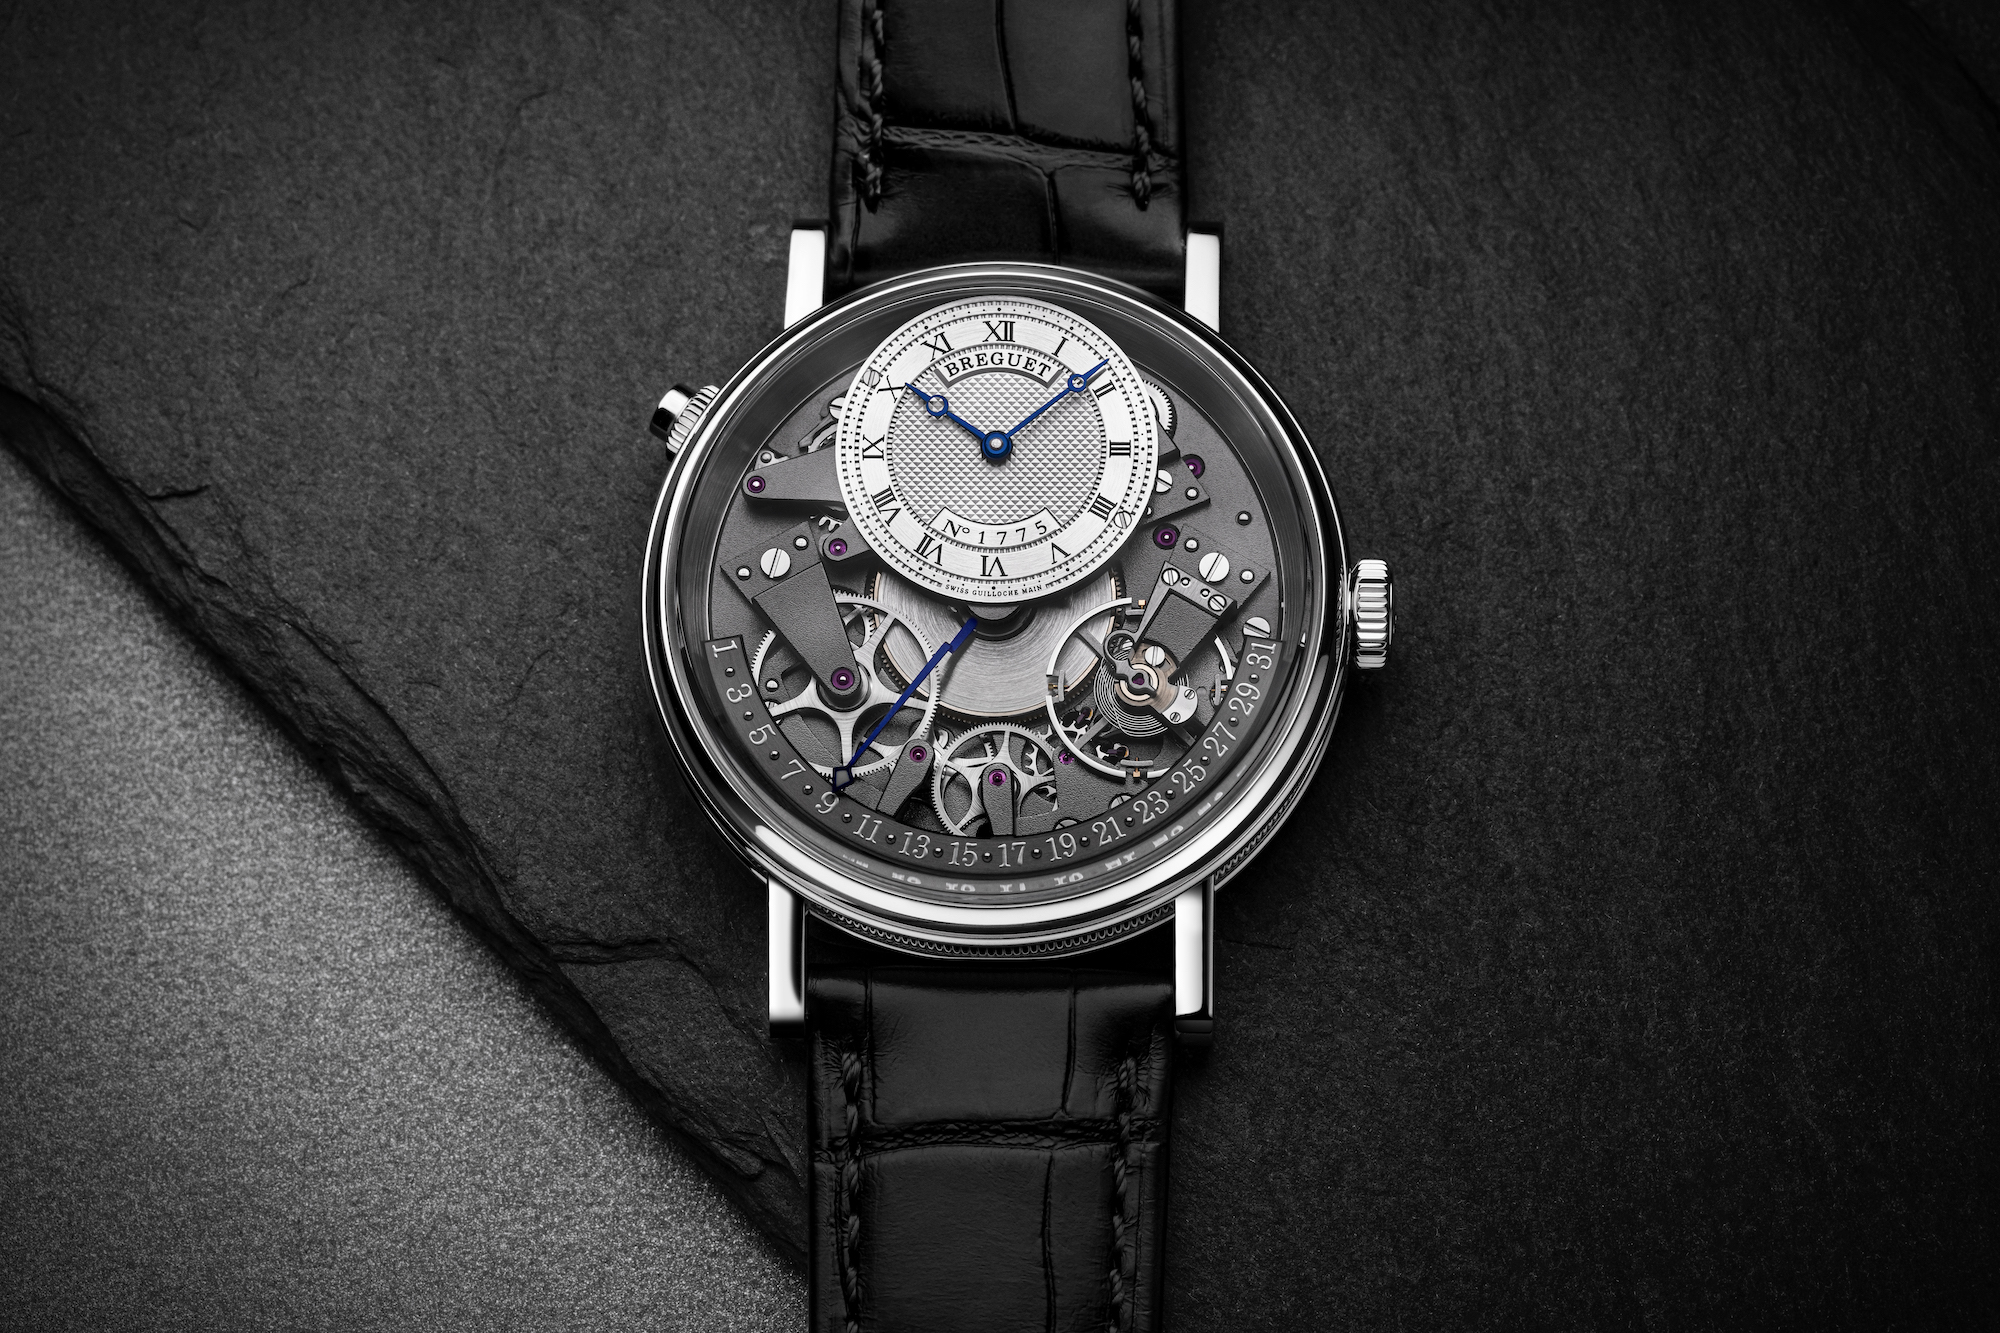 Breguet Tradition Quantieme Retrograde 7597BB_G1_9WU lifestyle